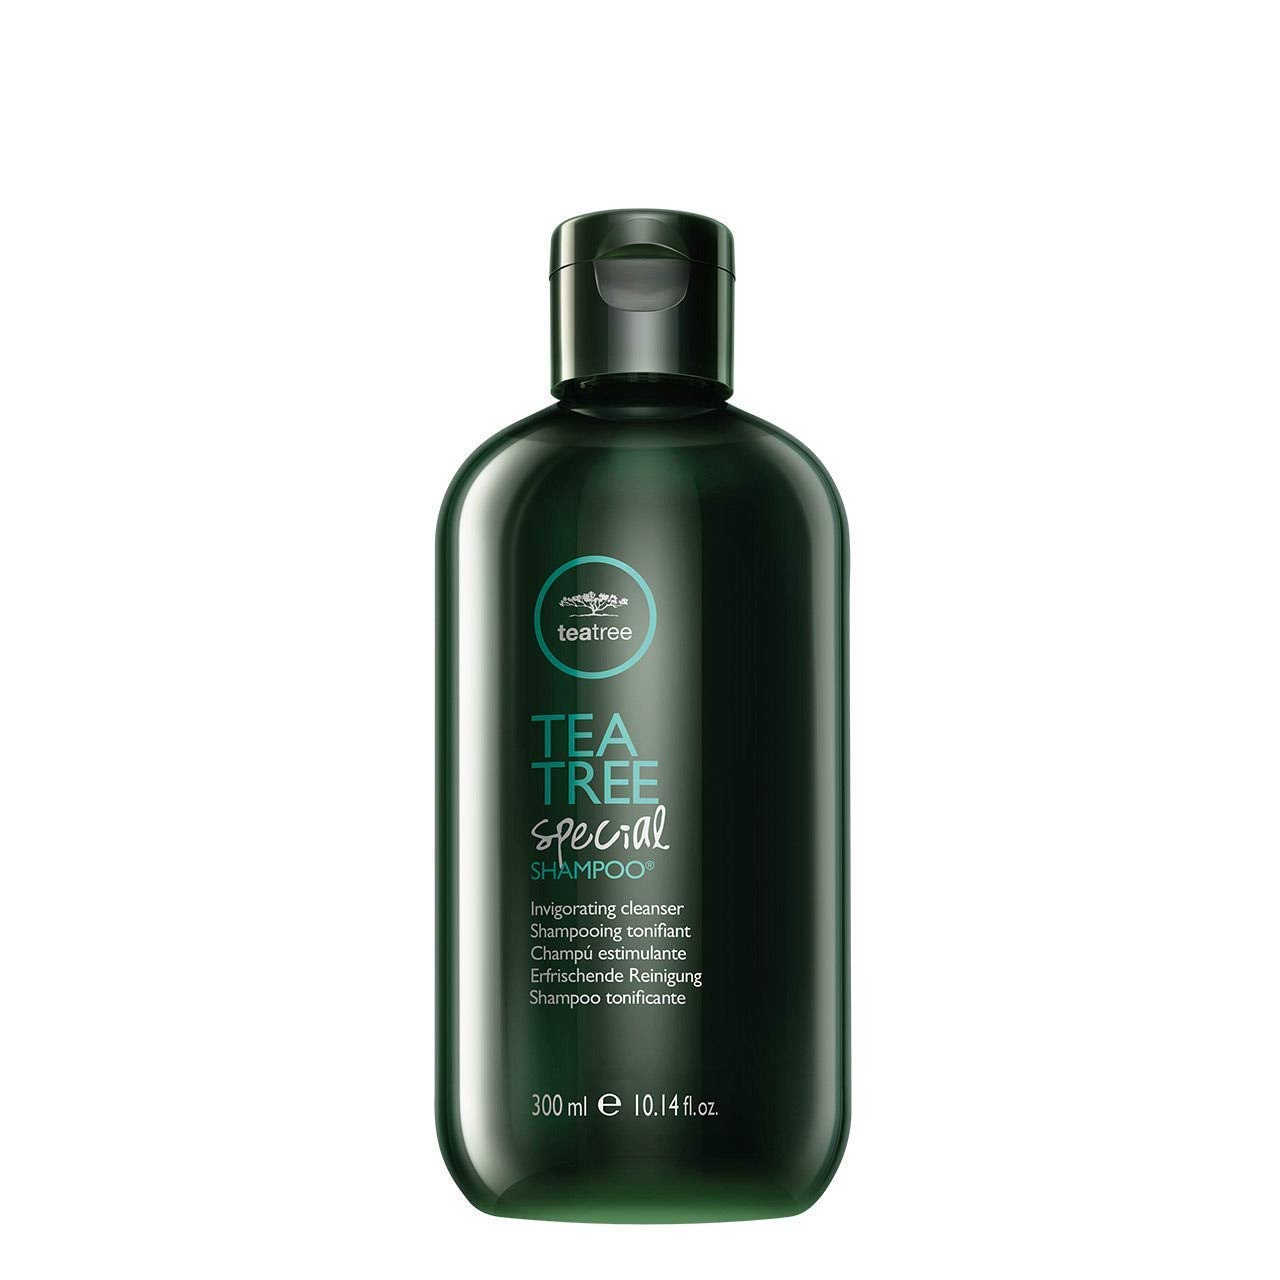 Paul Mitchell Tea Tree Special Shampoo, 300 ml John Paul Mitchell Systems TTSS_TT_PM_300_ML